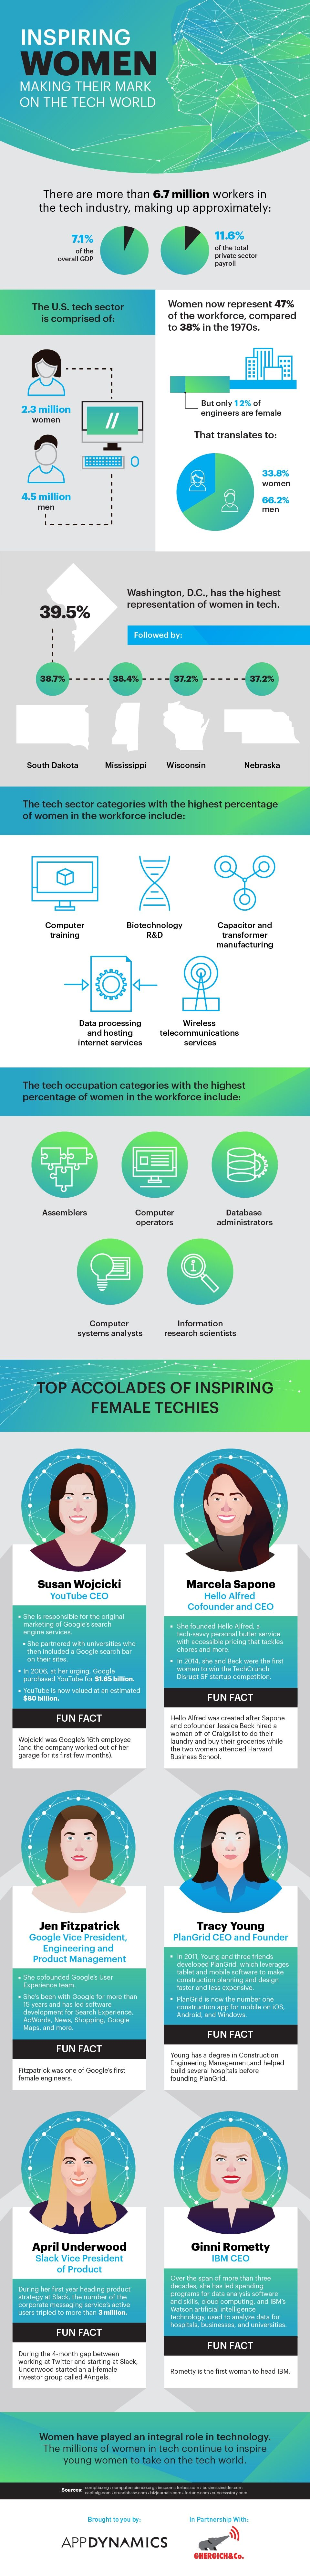 Inspiring Women Making Their Mark on the Tech World #infographic